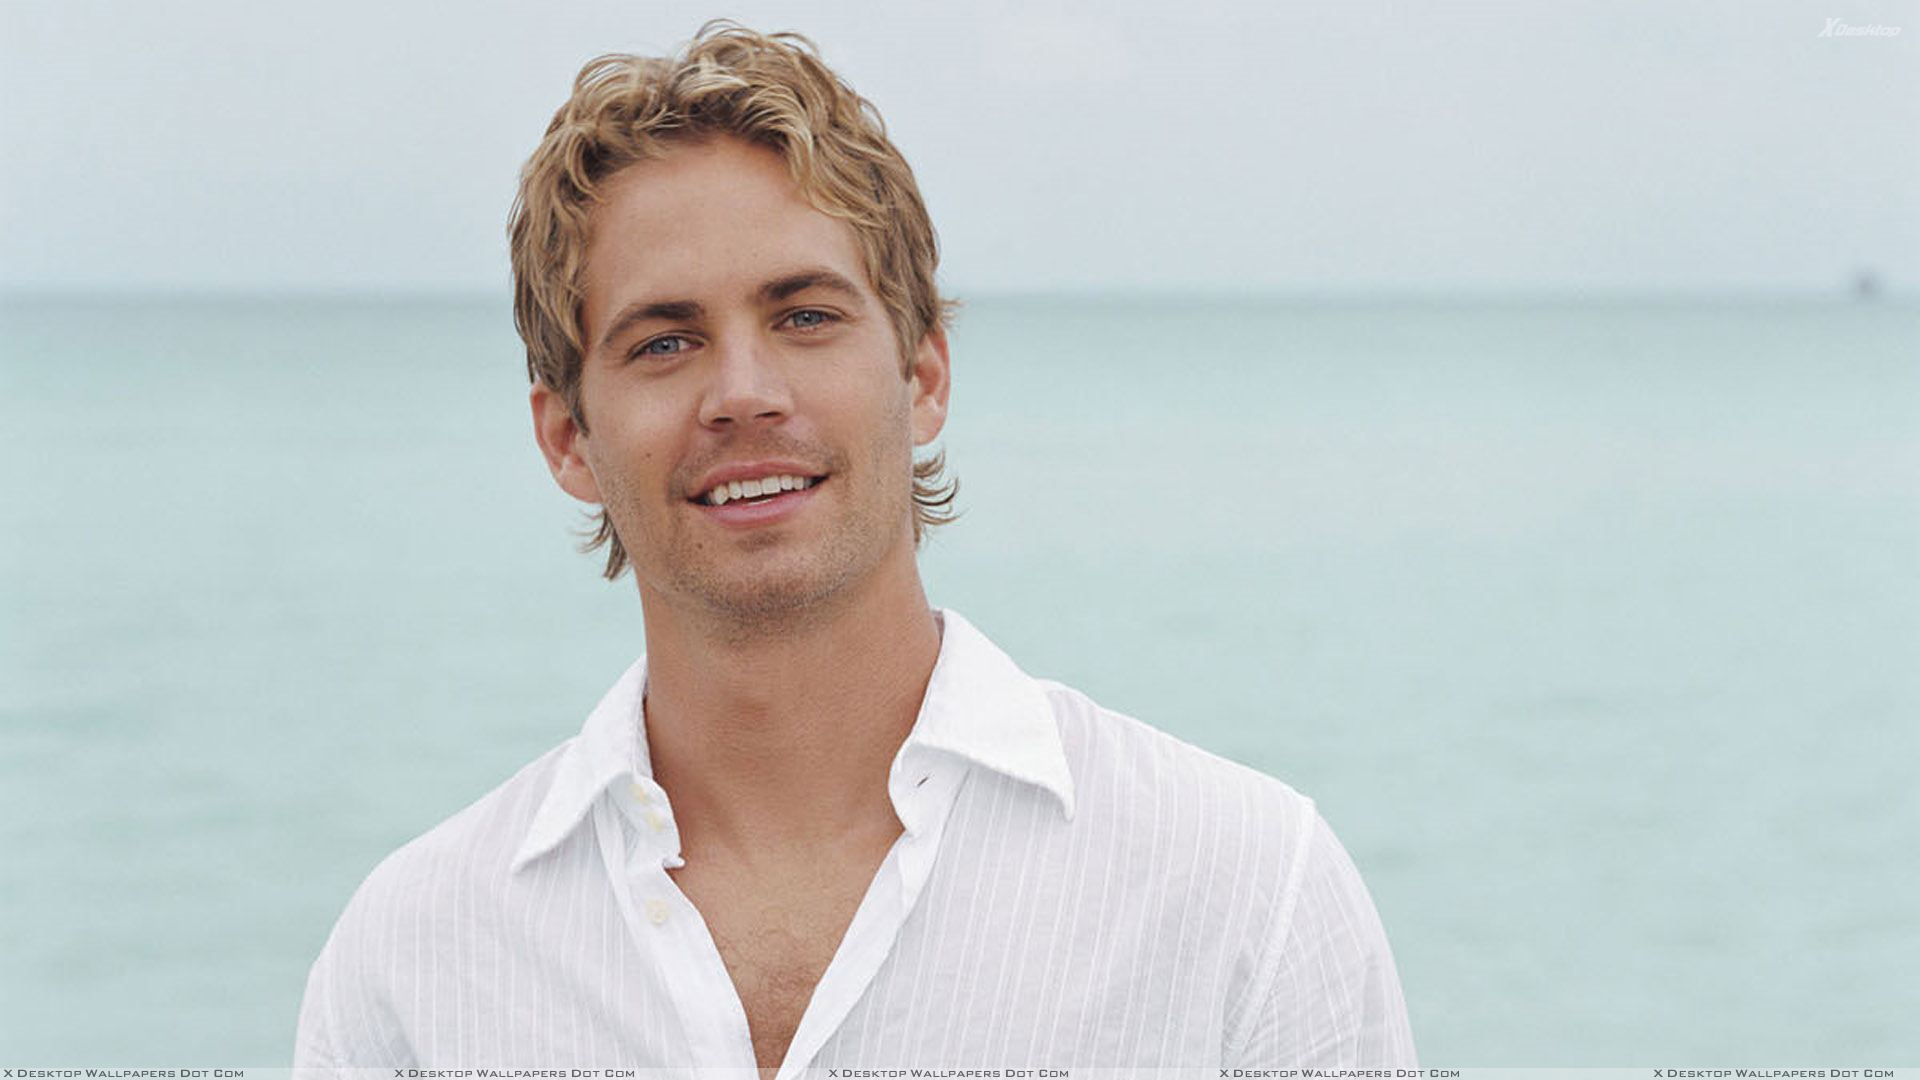 Paul Walker Wallpapers Photos Images In HD